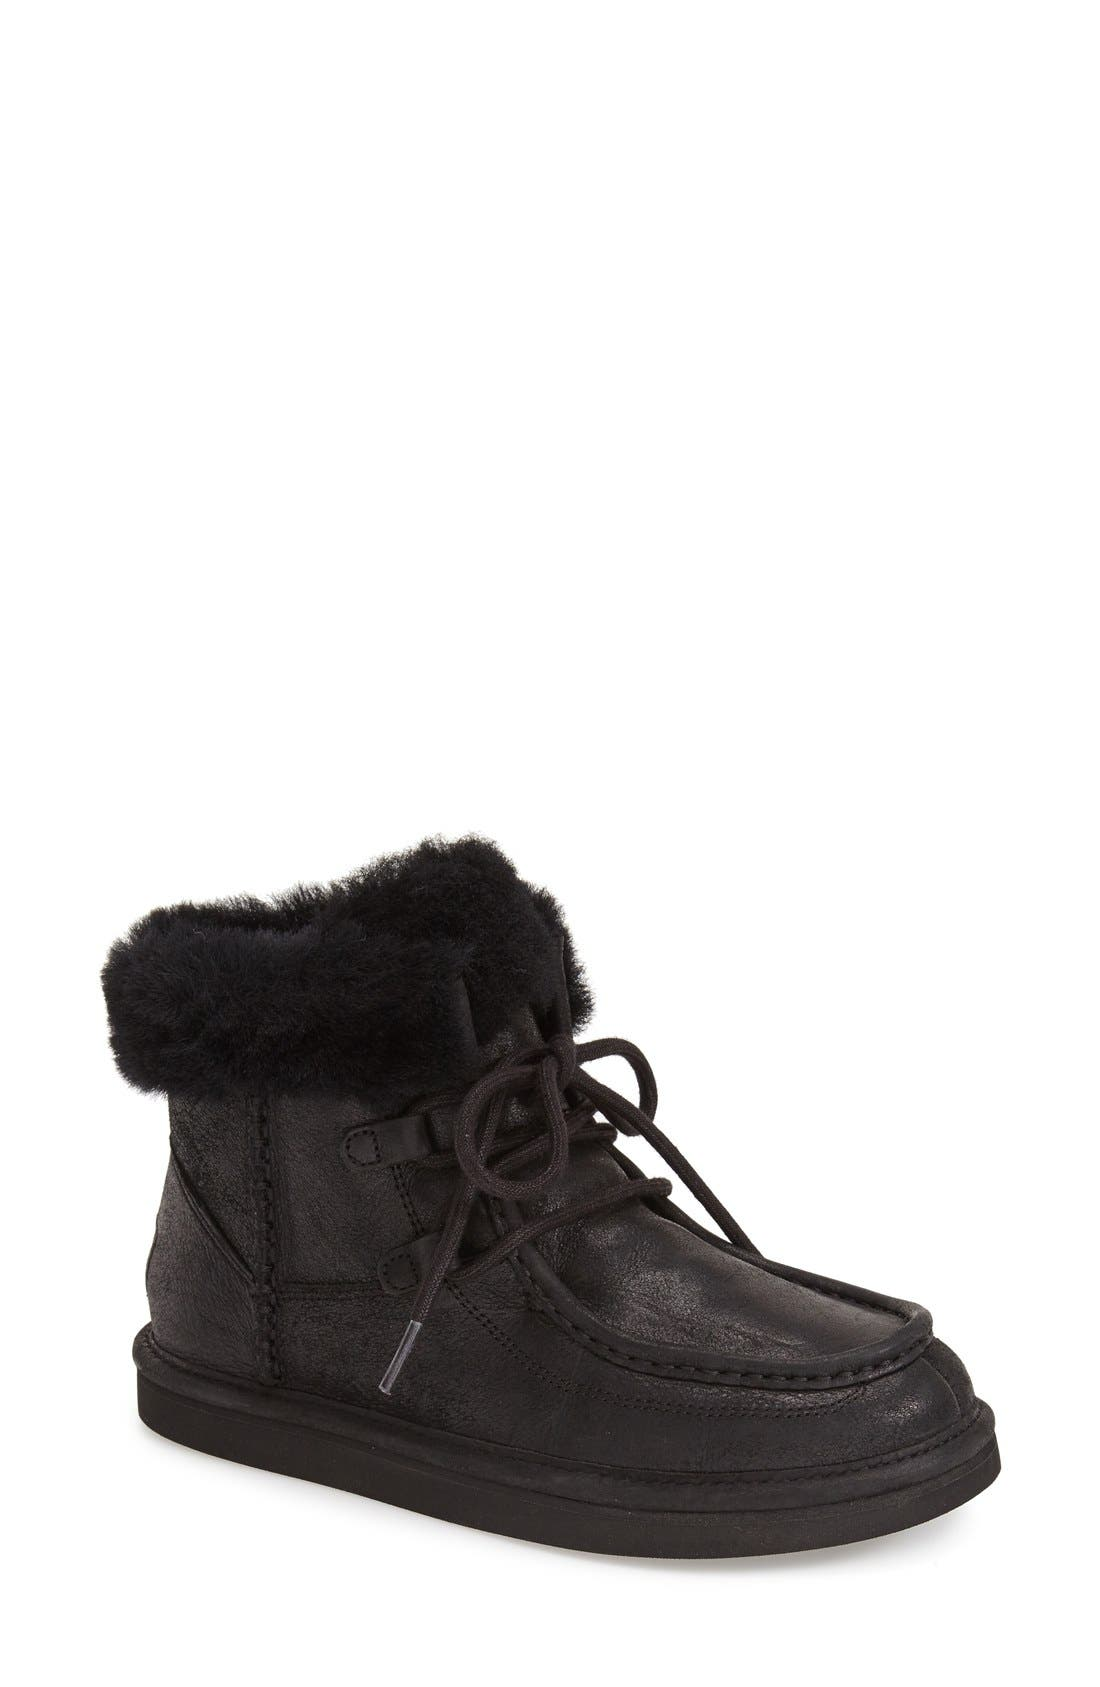 'Cypress' Water ResistantBoot,                             Main thumbnail 1, color,                             001